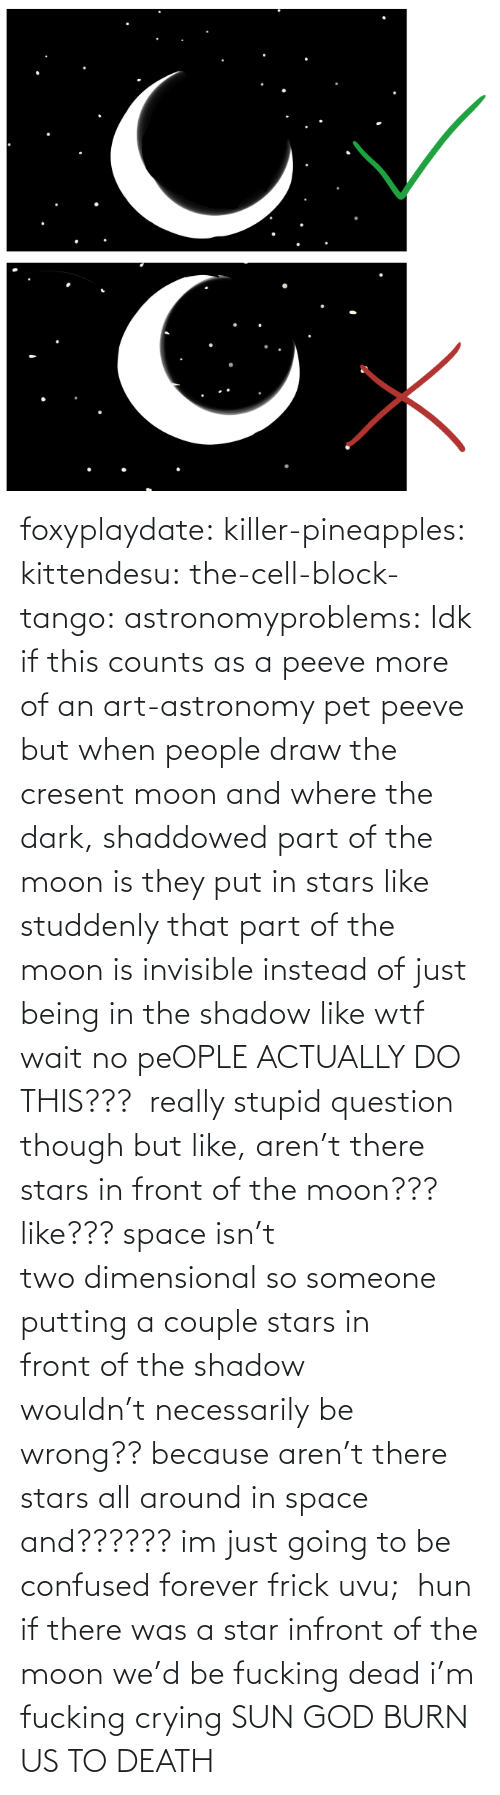 Instead Of: foxyplaydate: killer-pineapples:  kittendesu:  the-cell-block-tango:  astronomyproblems:  Idk if this counts as a peeve more of an art-astronomy pet peeve but when people draw the cresent moon and where the dark, shaddowed part of the moon is they put in stars like studdenly that part of the moon is invisible instead of just being in the shadow like wtf  wait no peOPLE ACTUALLY DO THIS???   really stupid question though but like, aren't there stars in front of the moon??? like??? space isn't two dimensional so someone putting a couple stars in front of the shadow wouldn't necessarily be wrong?? because aren't there stars all around in space and?????? im just going to be confused forever frick uvu;   hun if there was a star infront of the moon we'd be fucking dead  i'm fucking crying    SUN GOD BURN US TO DEATH